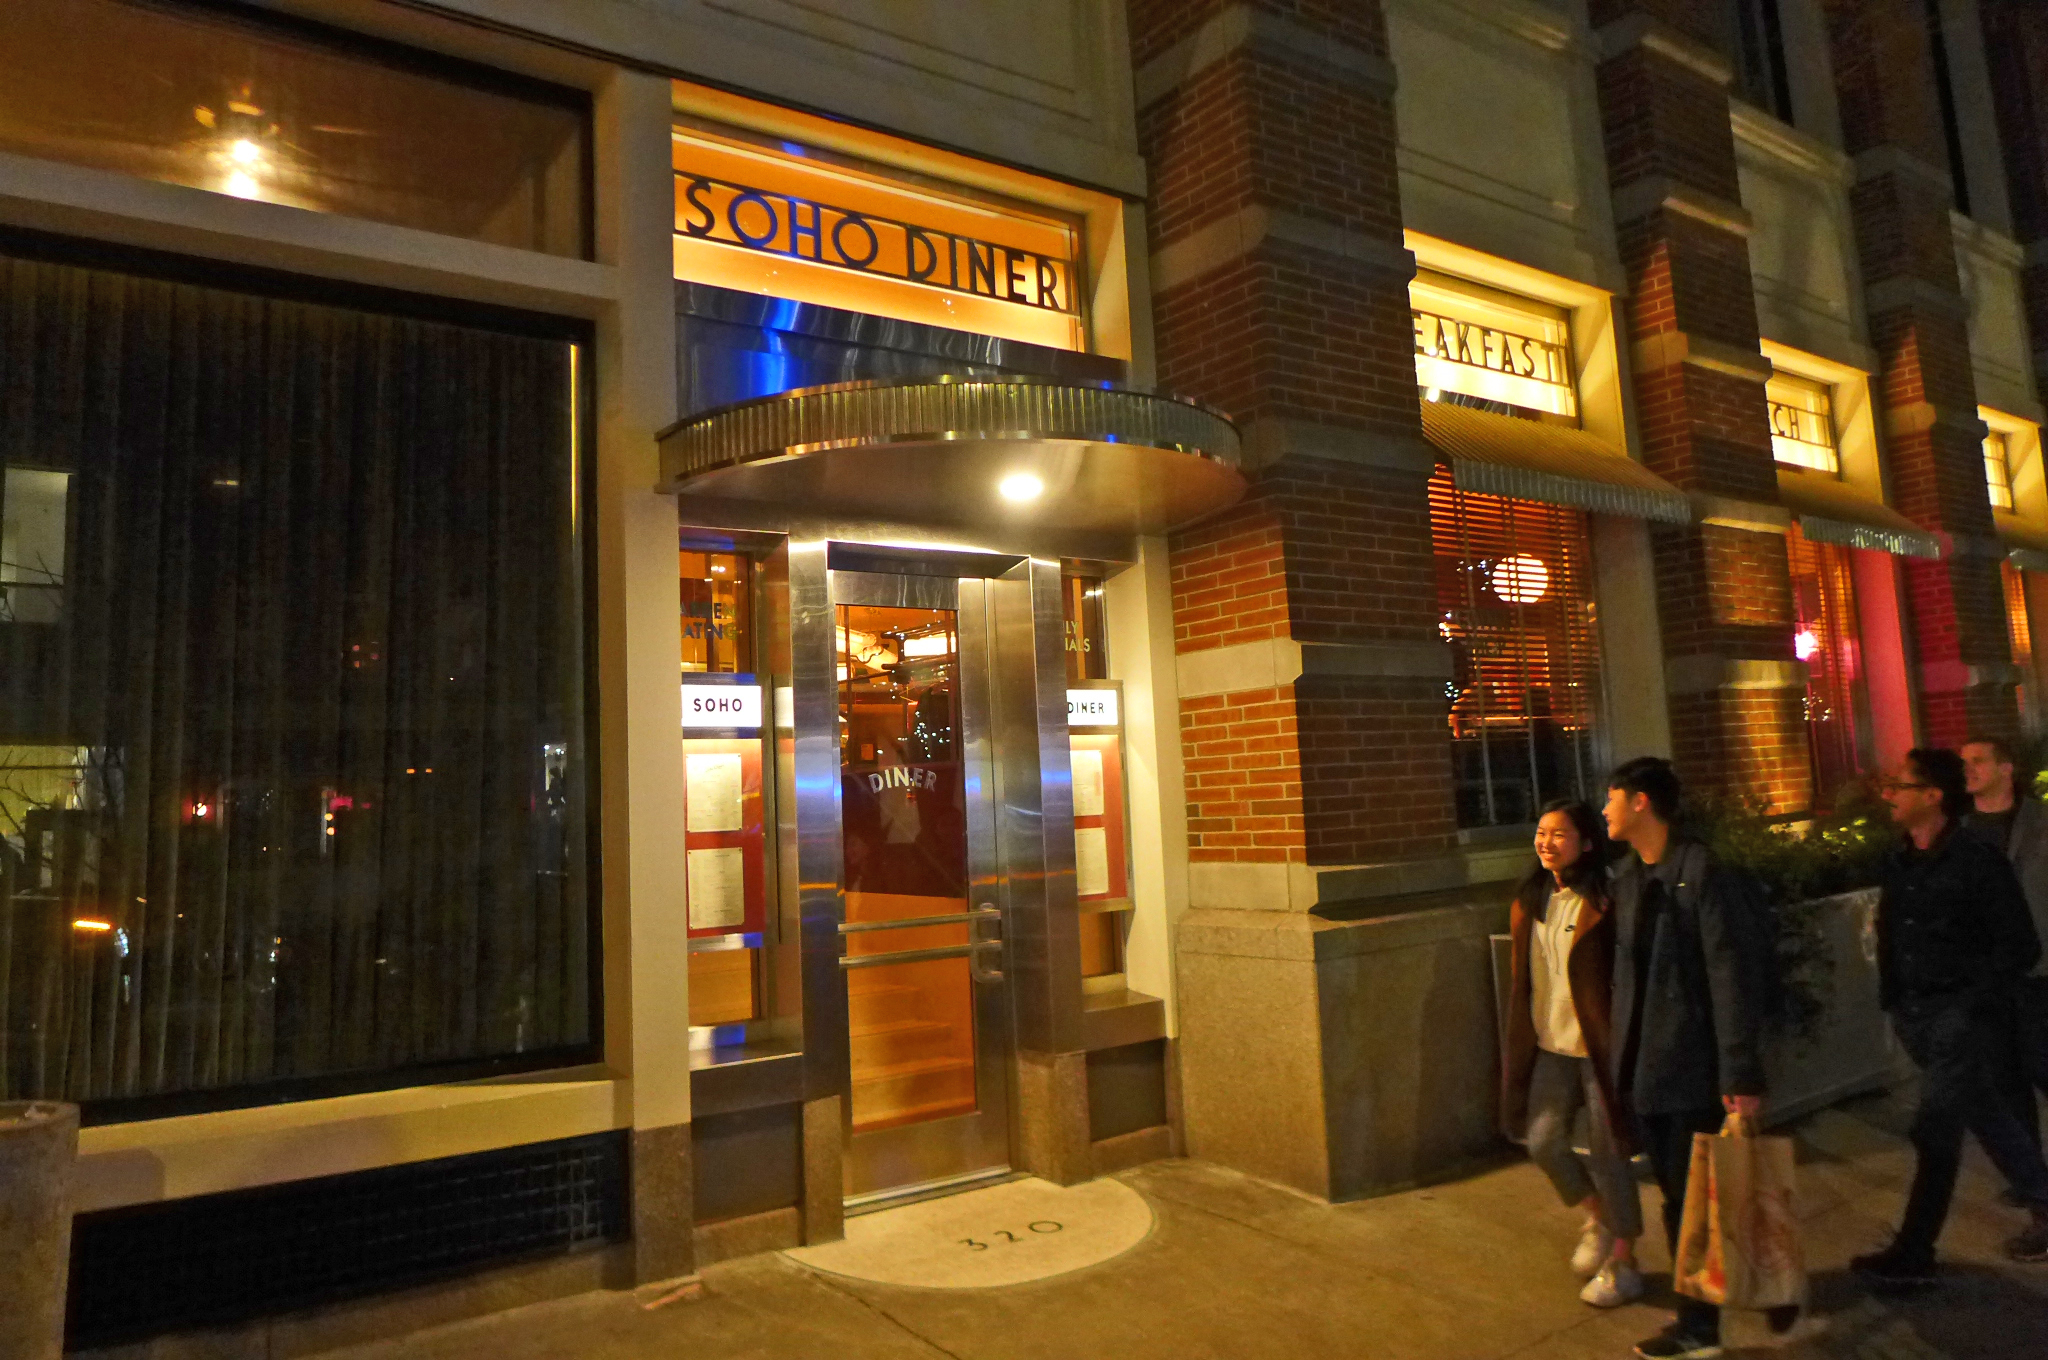 A darkened facade of a diner in a hotel, with laughing people passing by on the sidewalk.